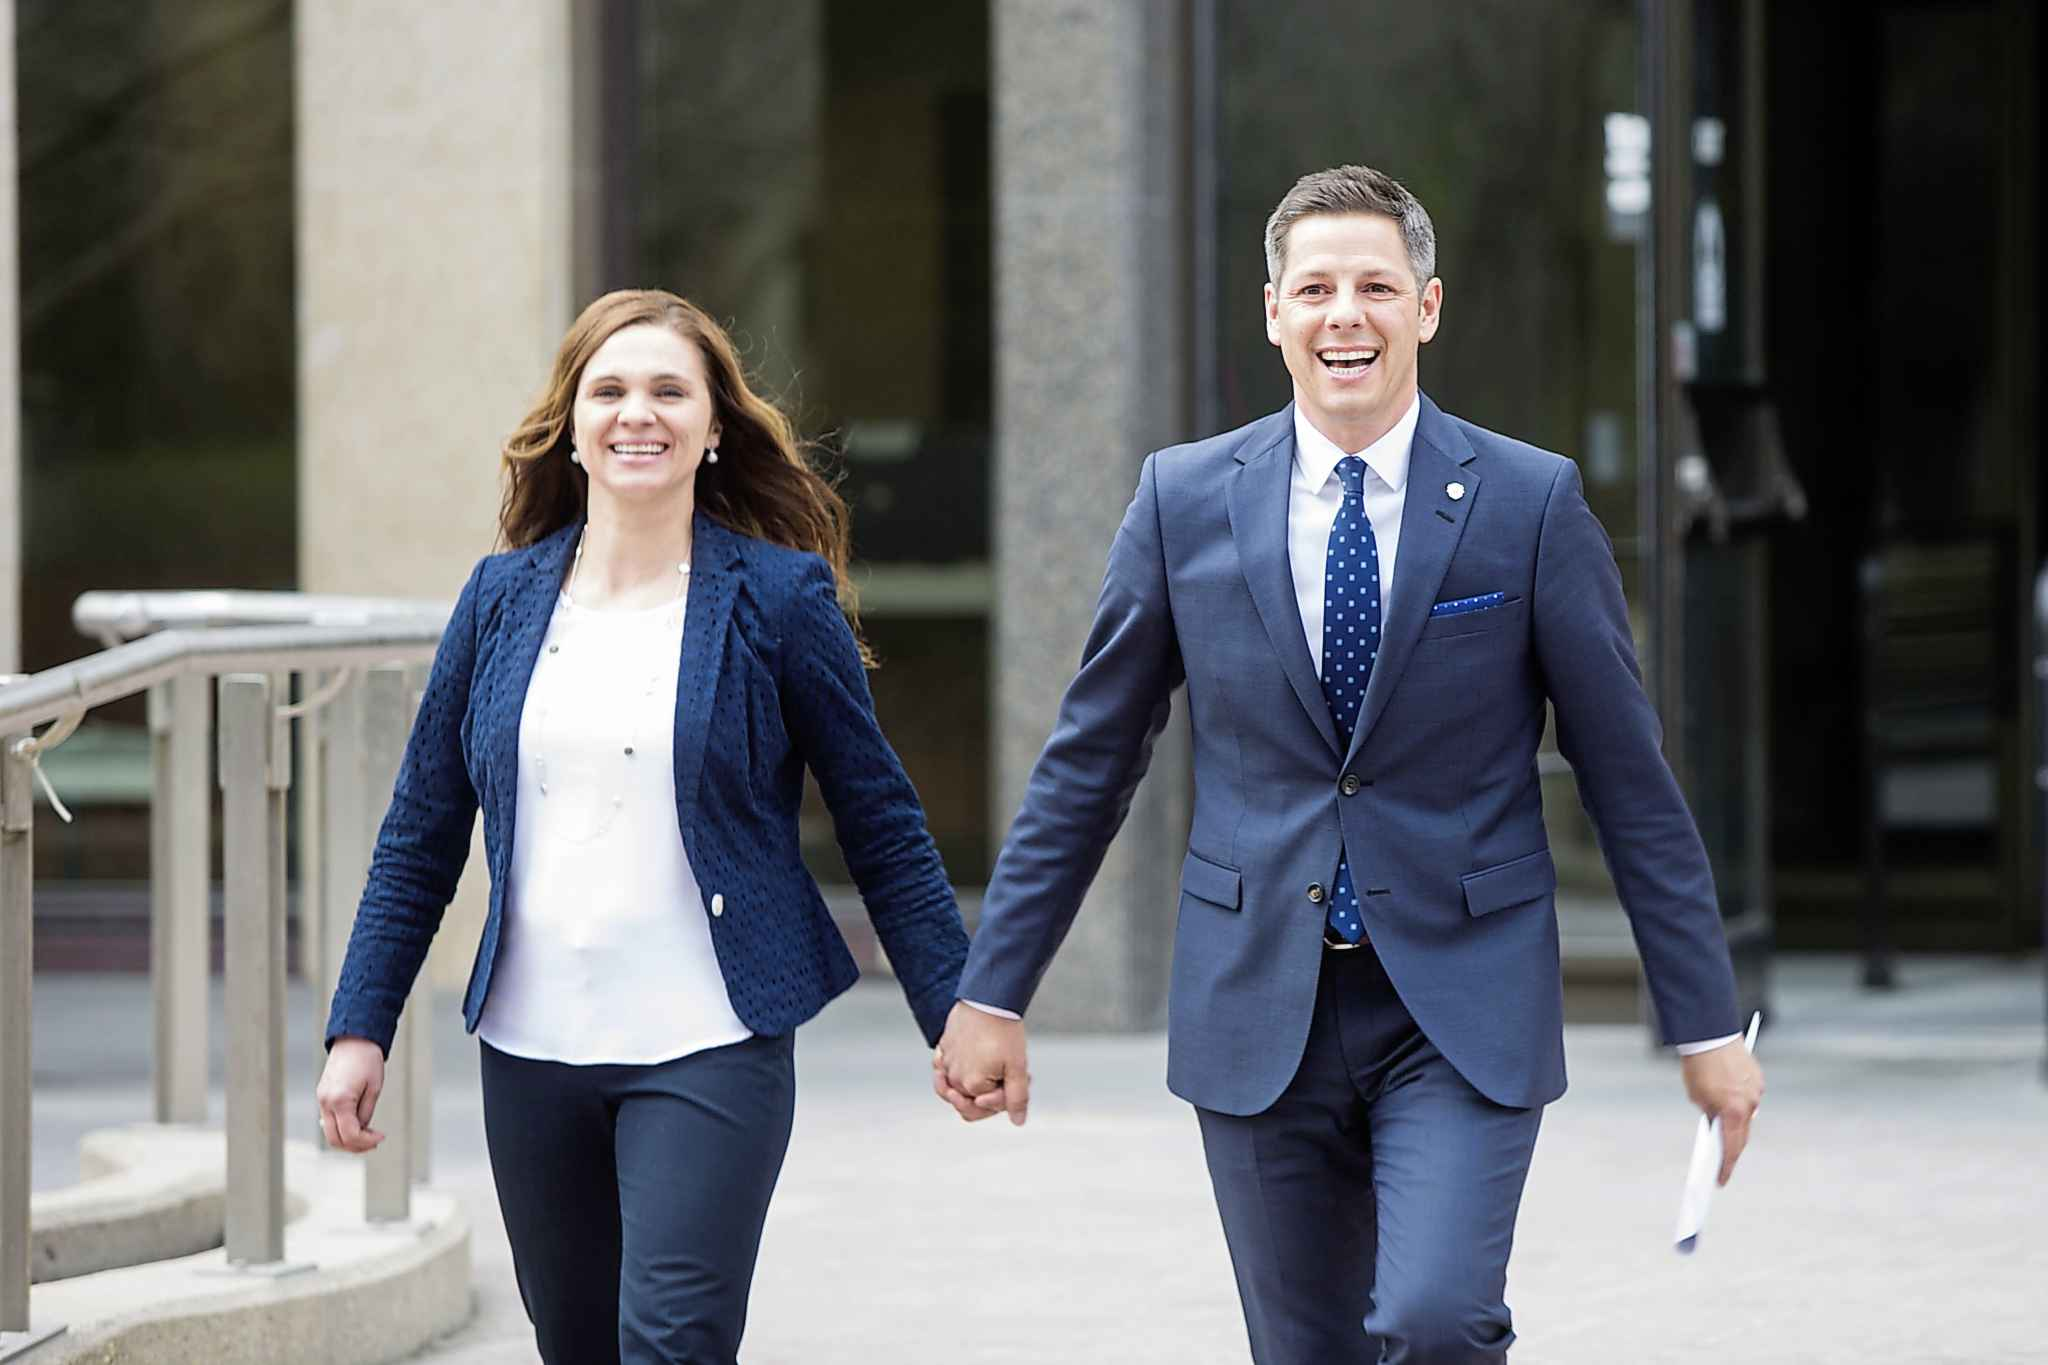 MIKAELA MACKENZIE / WINNIPEG FREE PRESSMayor Brian Bowman and his wife, Tracy Bowman, walk to the clerk's office to register to seek re-election at City Hall in Winnipeg on Friday, May 11, 2018. Mikaela MacKenzie / Winnipeg Free Press 2018.